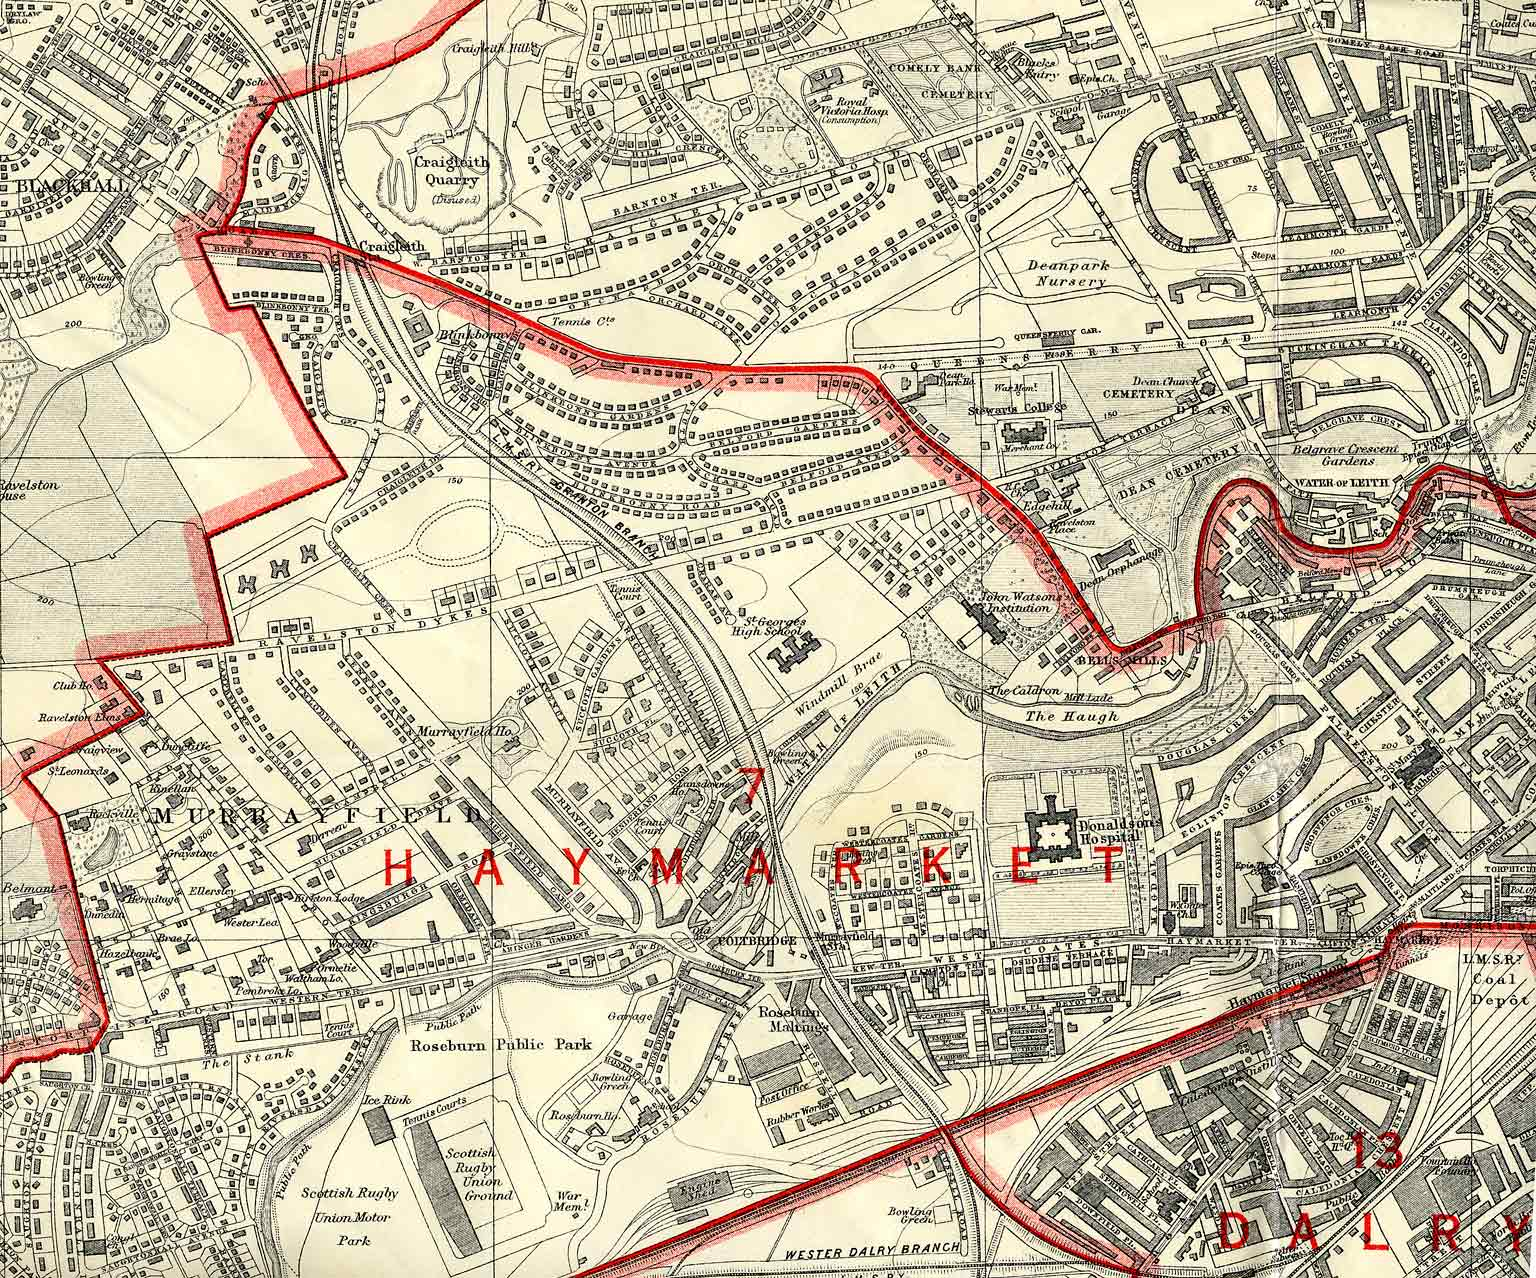 Edinburgh and Leith map, 1925  -  West Edinburgh section